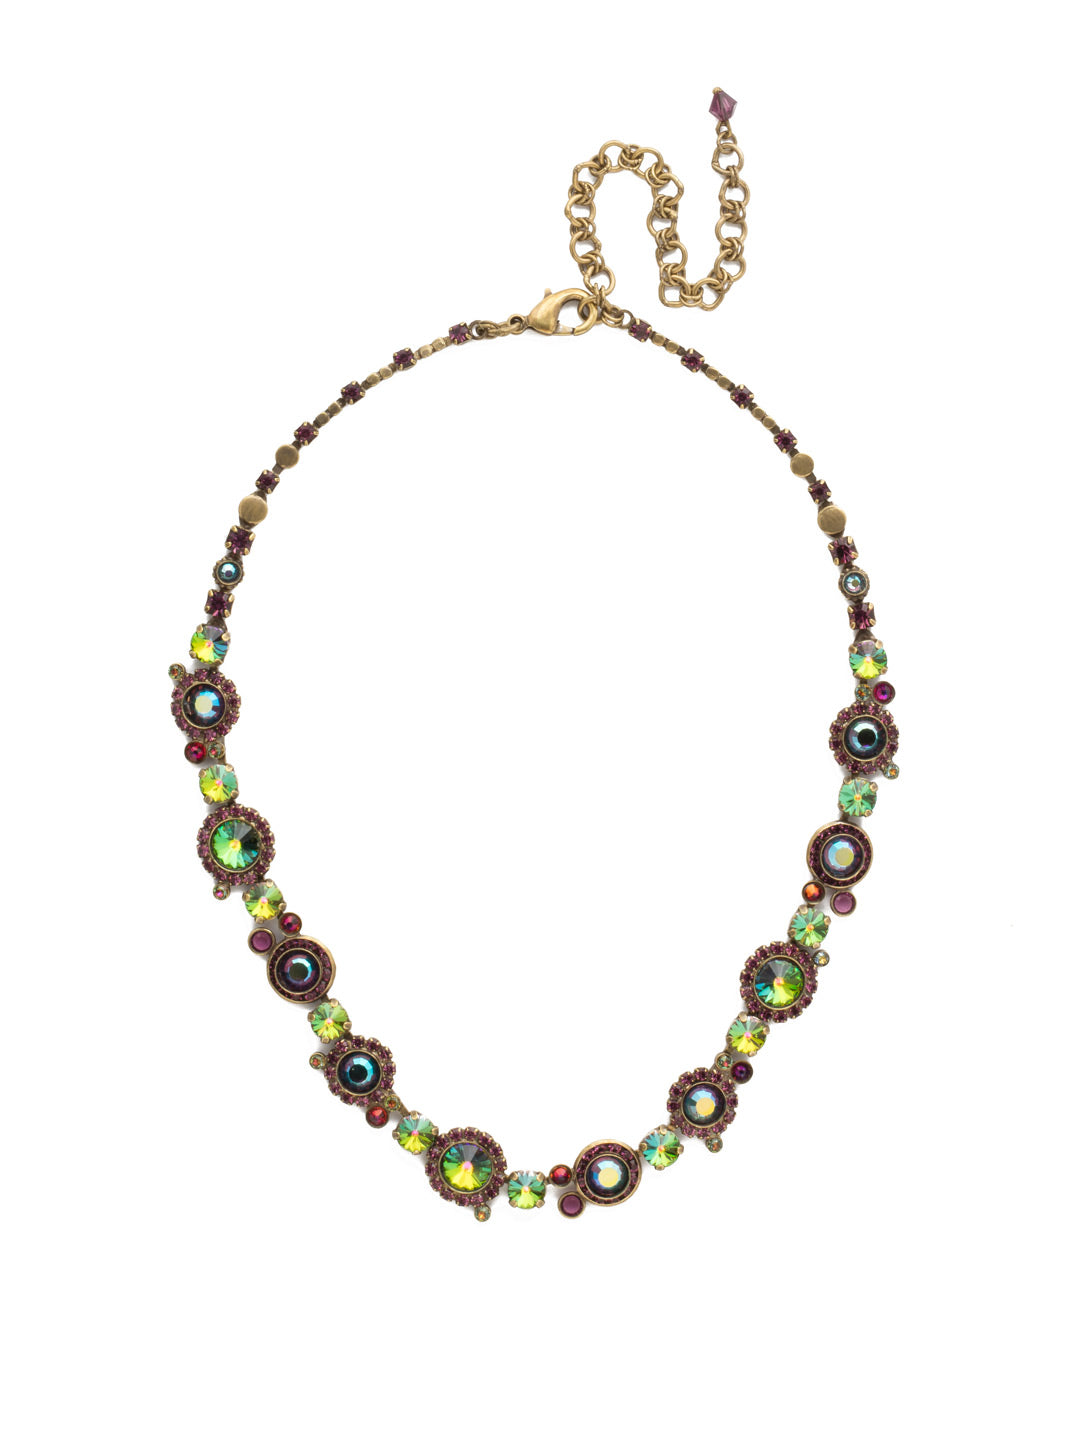 Break Out The Bubbly Line Necklace - NCE12AGVO